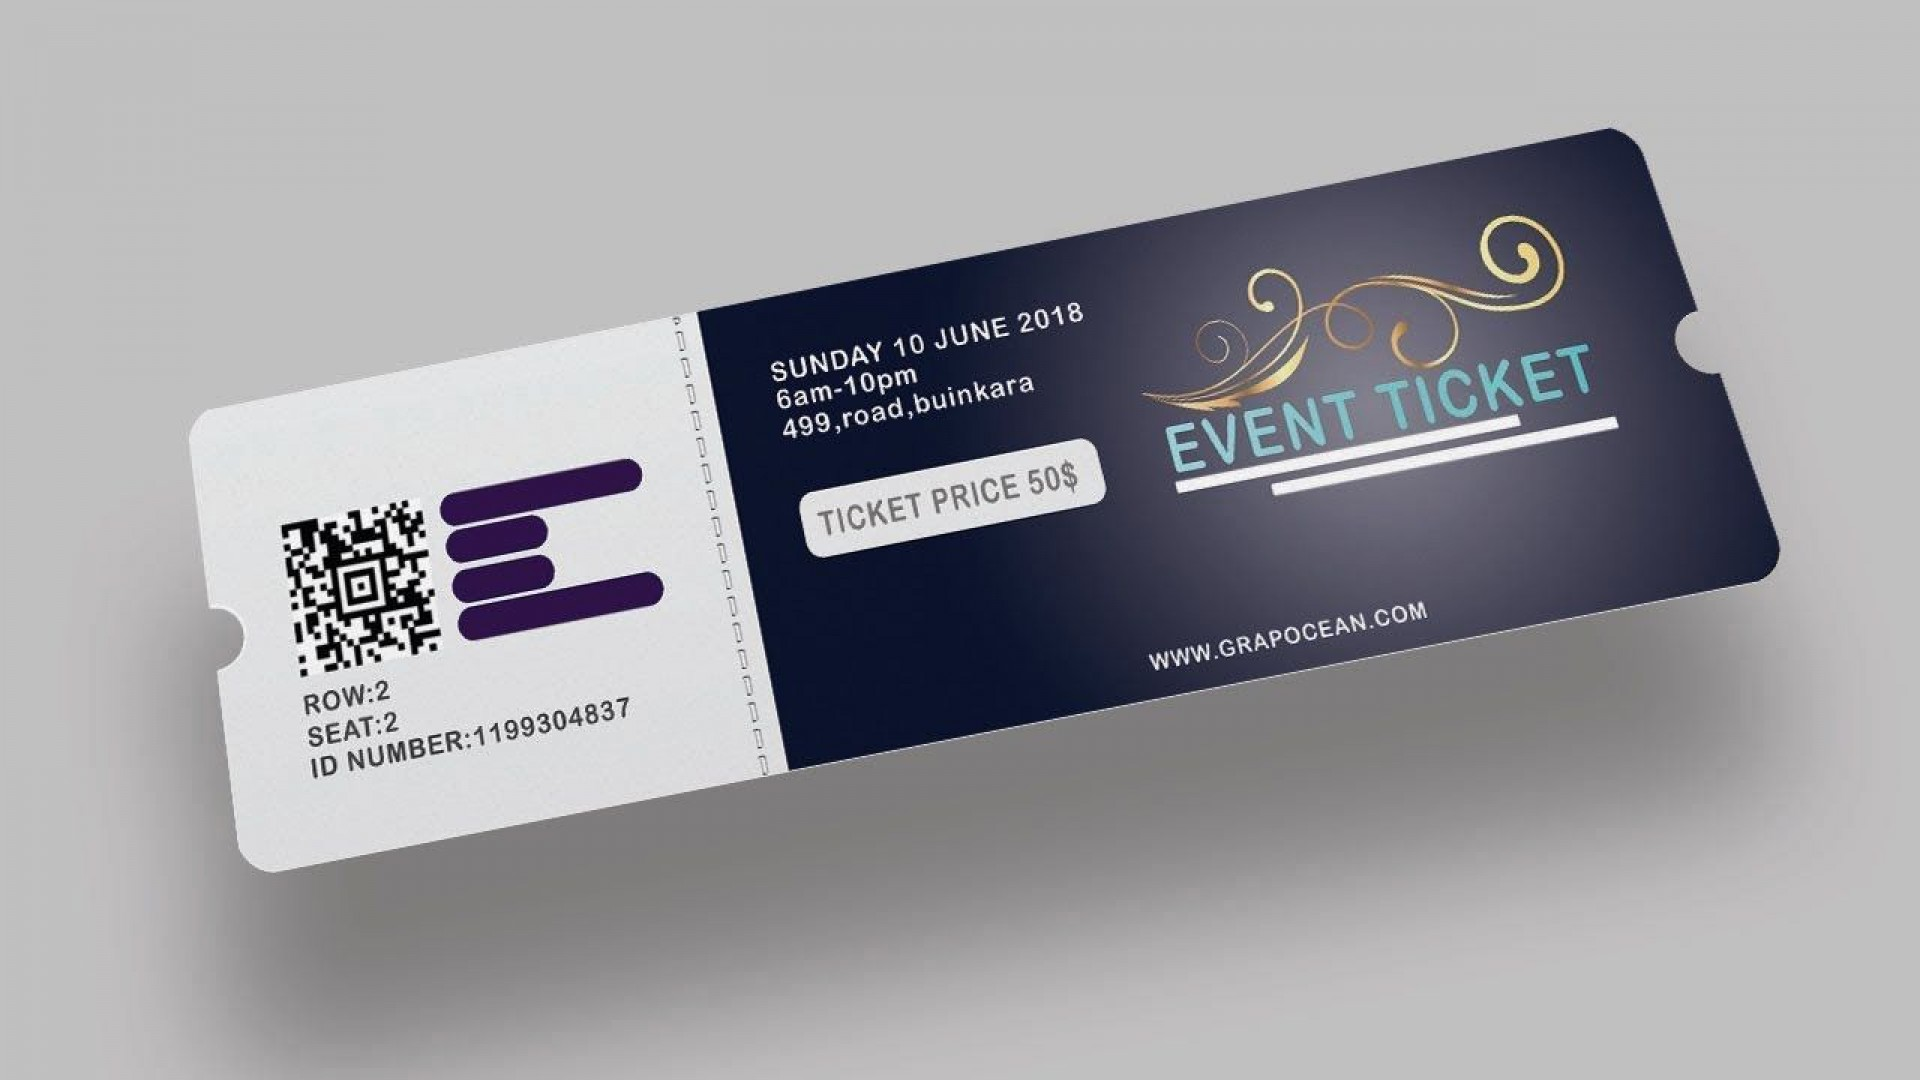 003 Awful Event Ticket Template Photoshop Highest Quality  Design Psd Free Download1920